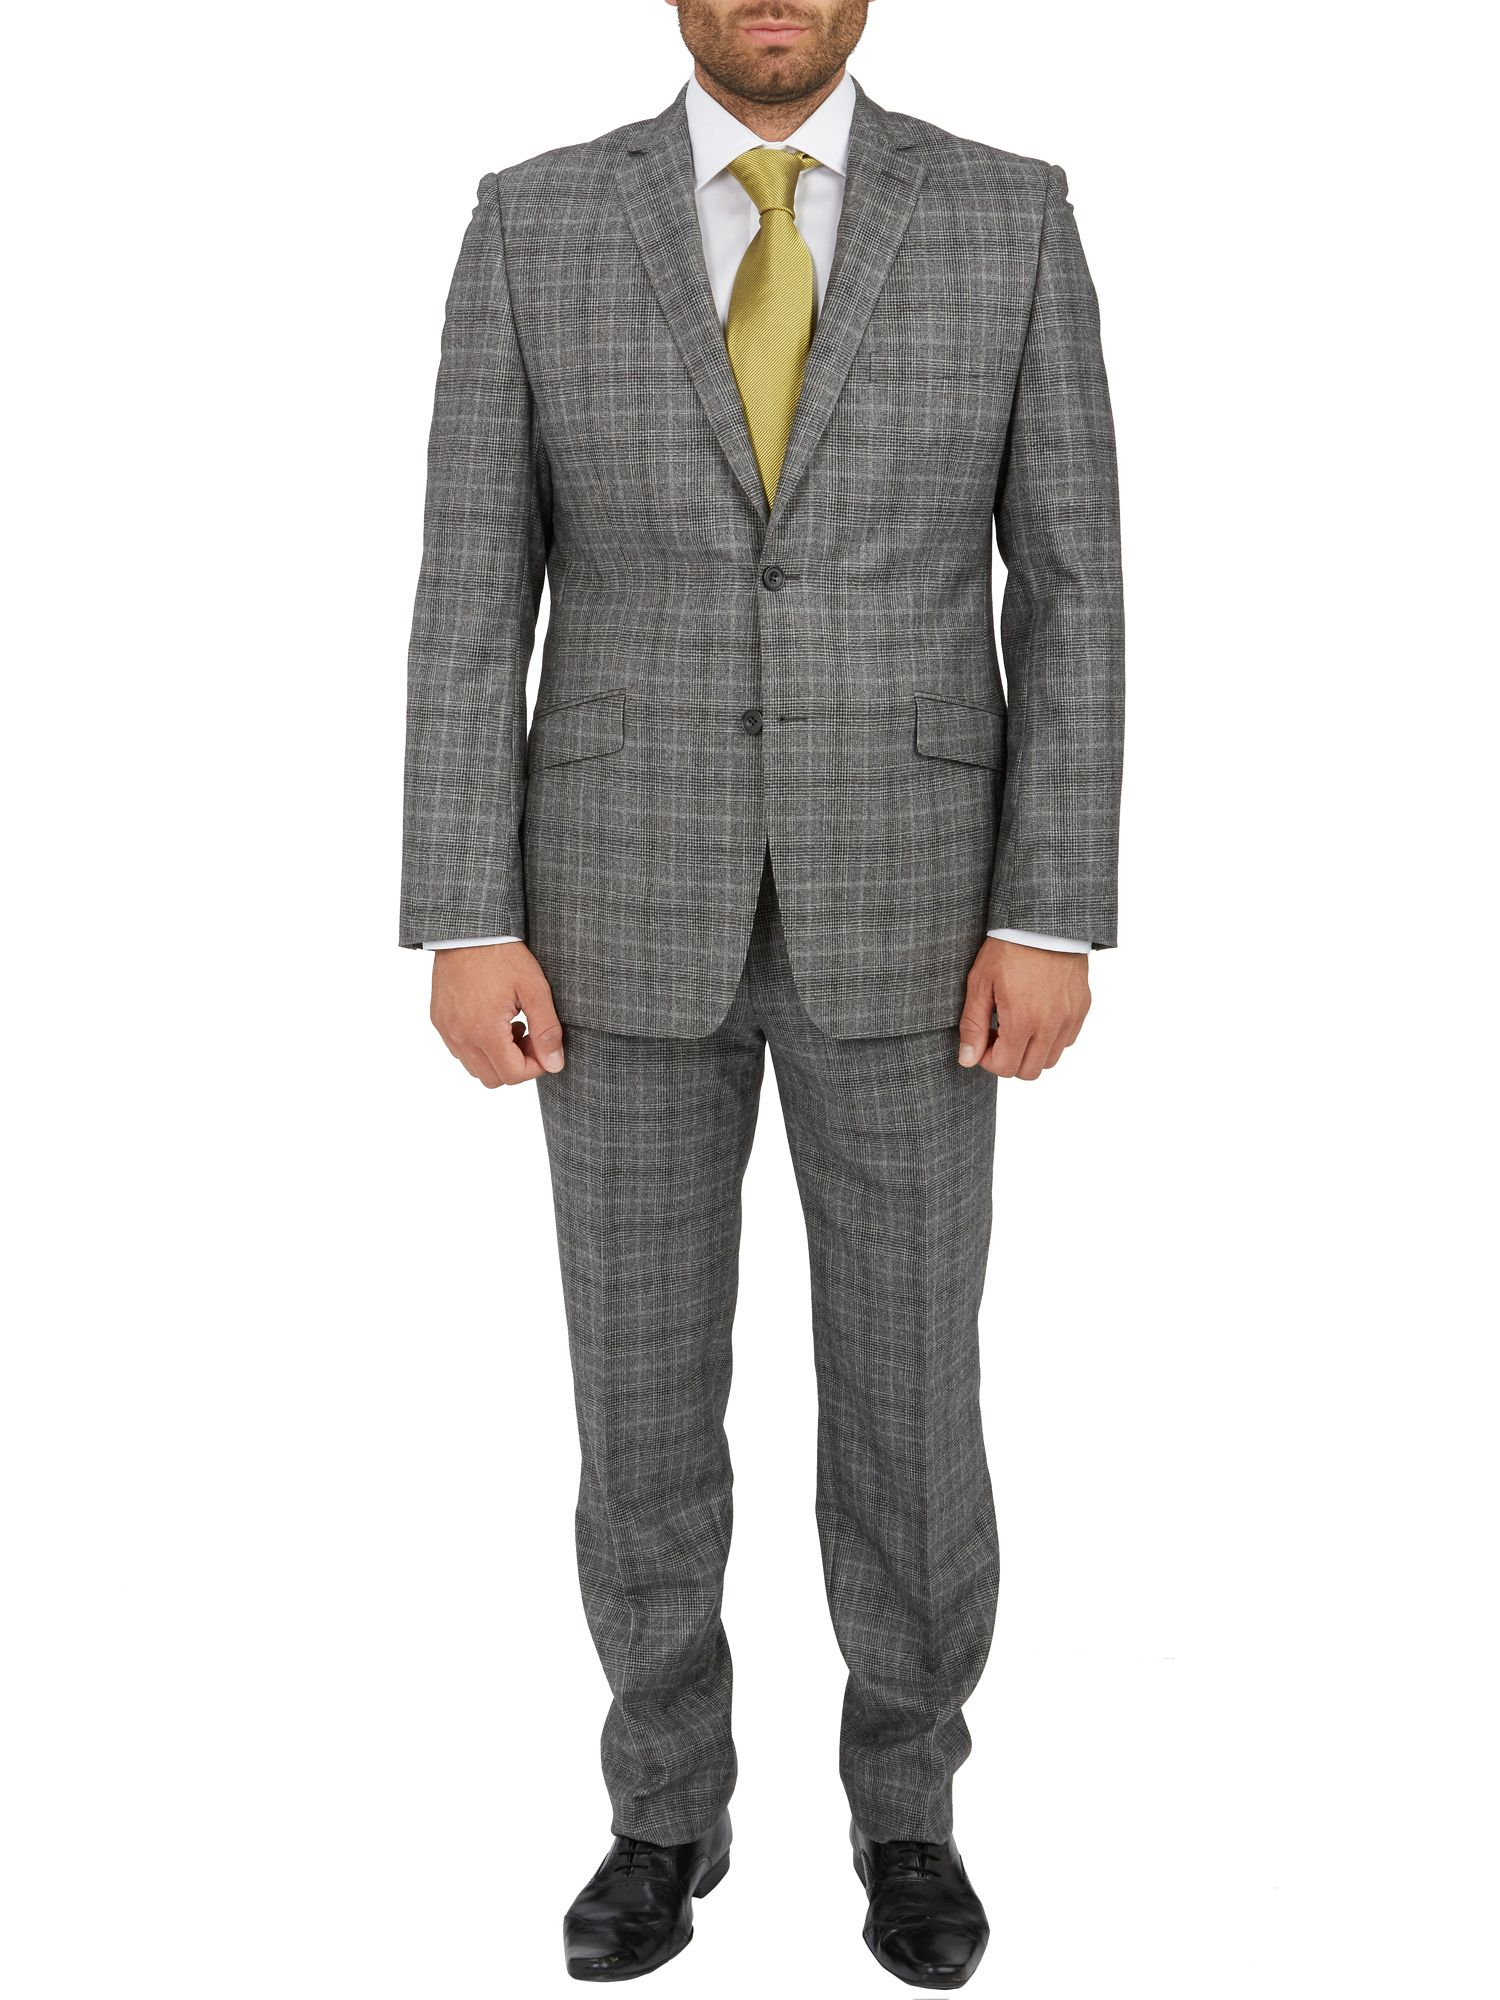 Busy mill glen check suit